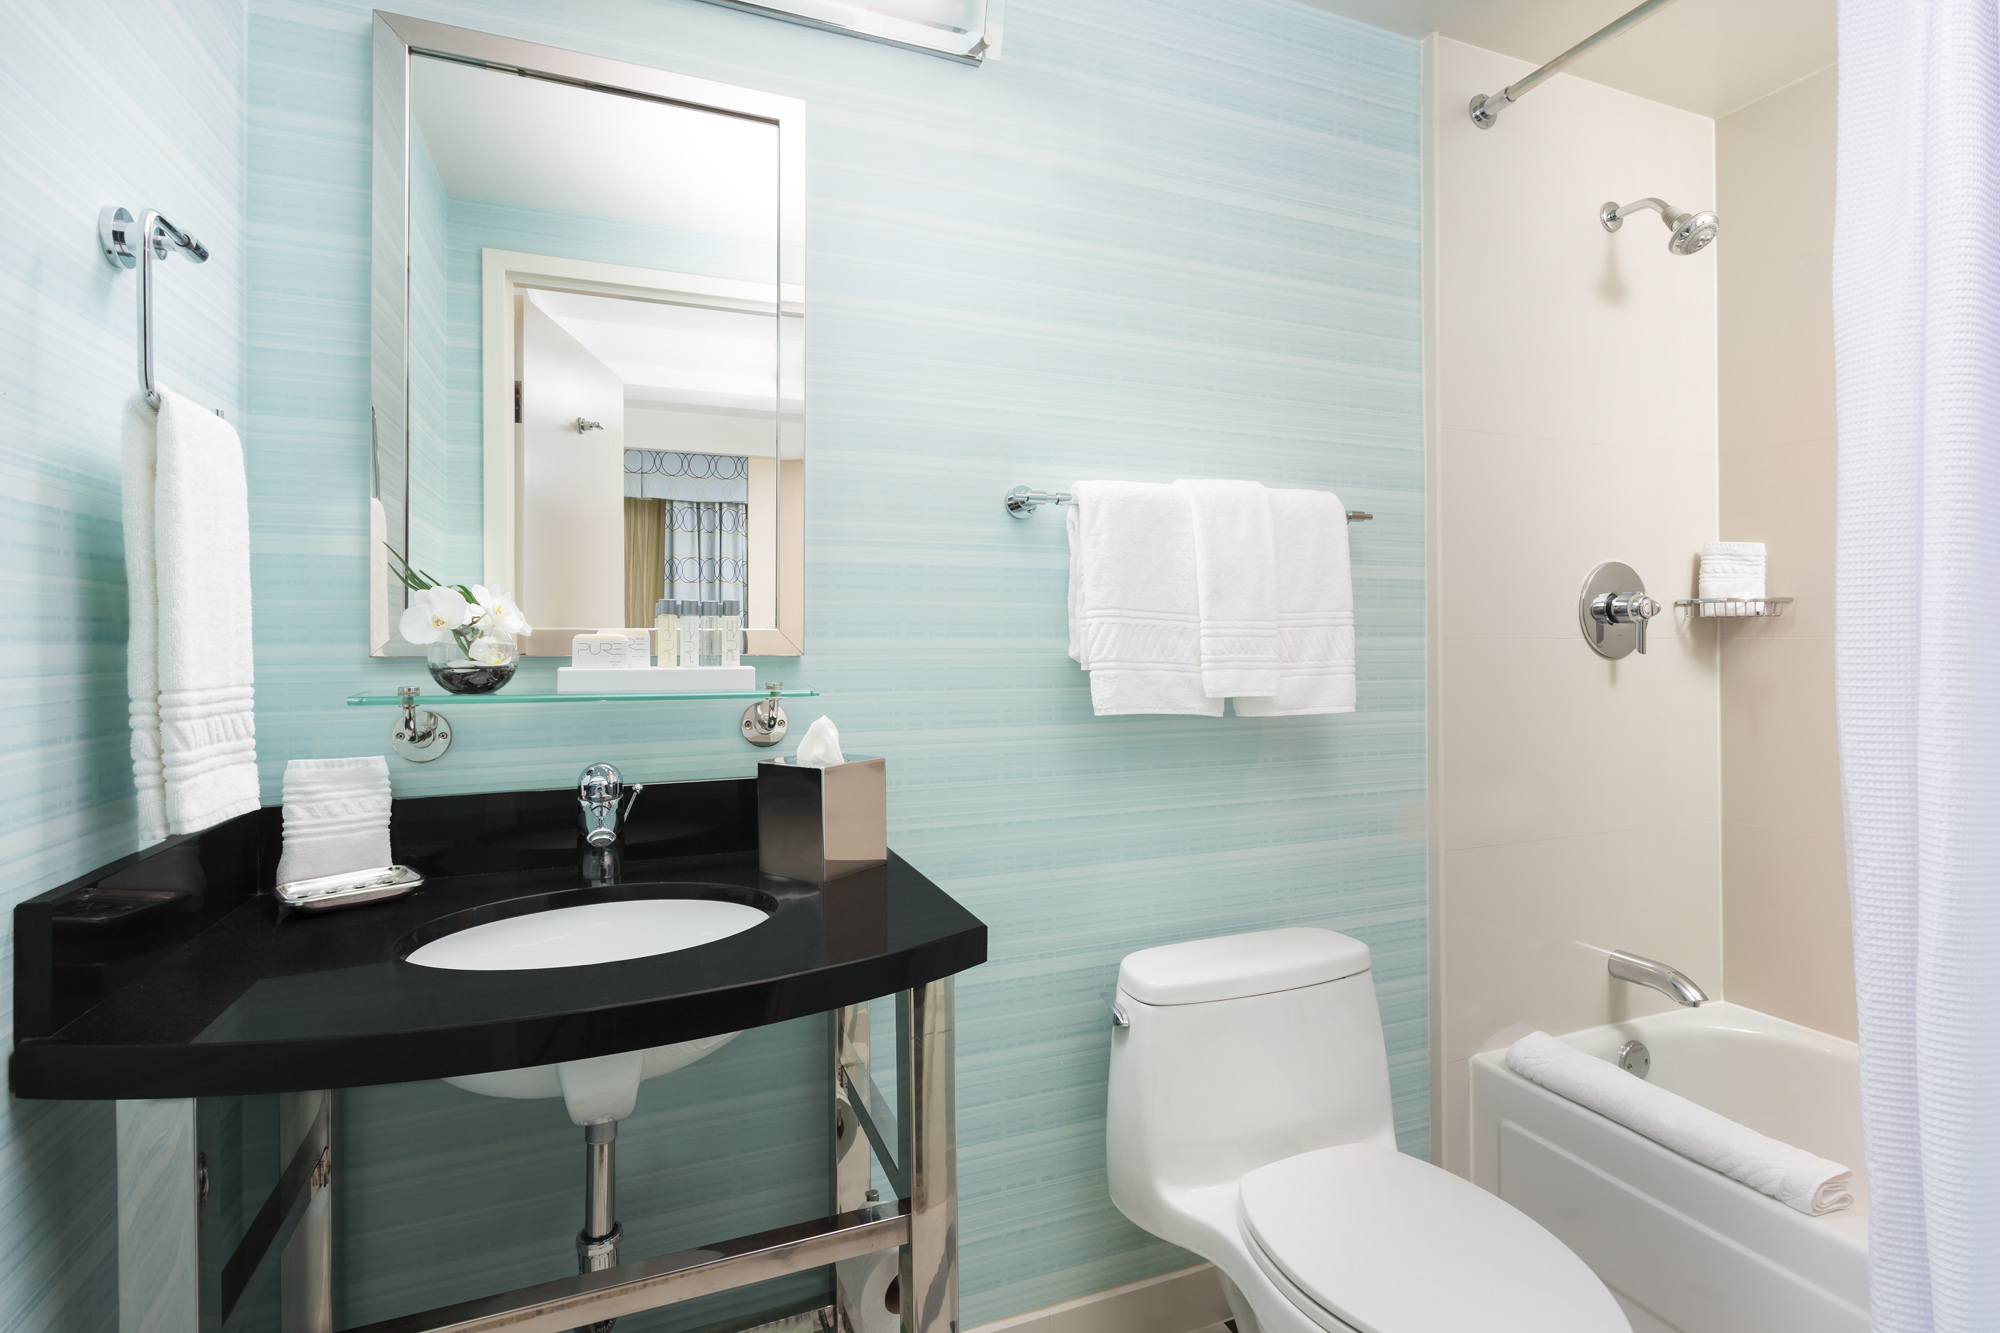 https://www.hotelsbyday.com/_data/default-hotel_image/2/13917/hm-guestroom-bathroom-tub.jpg